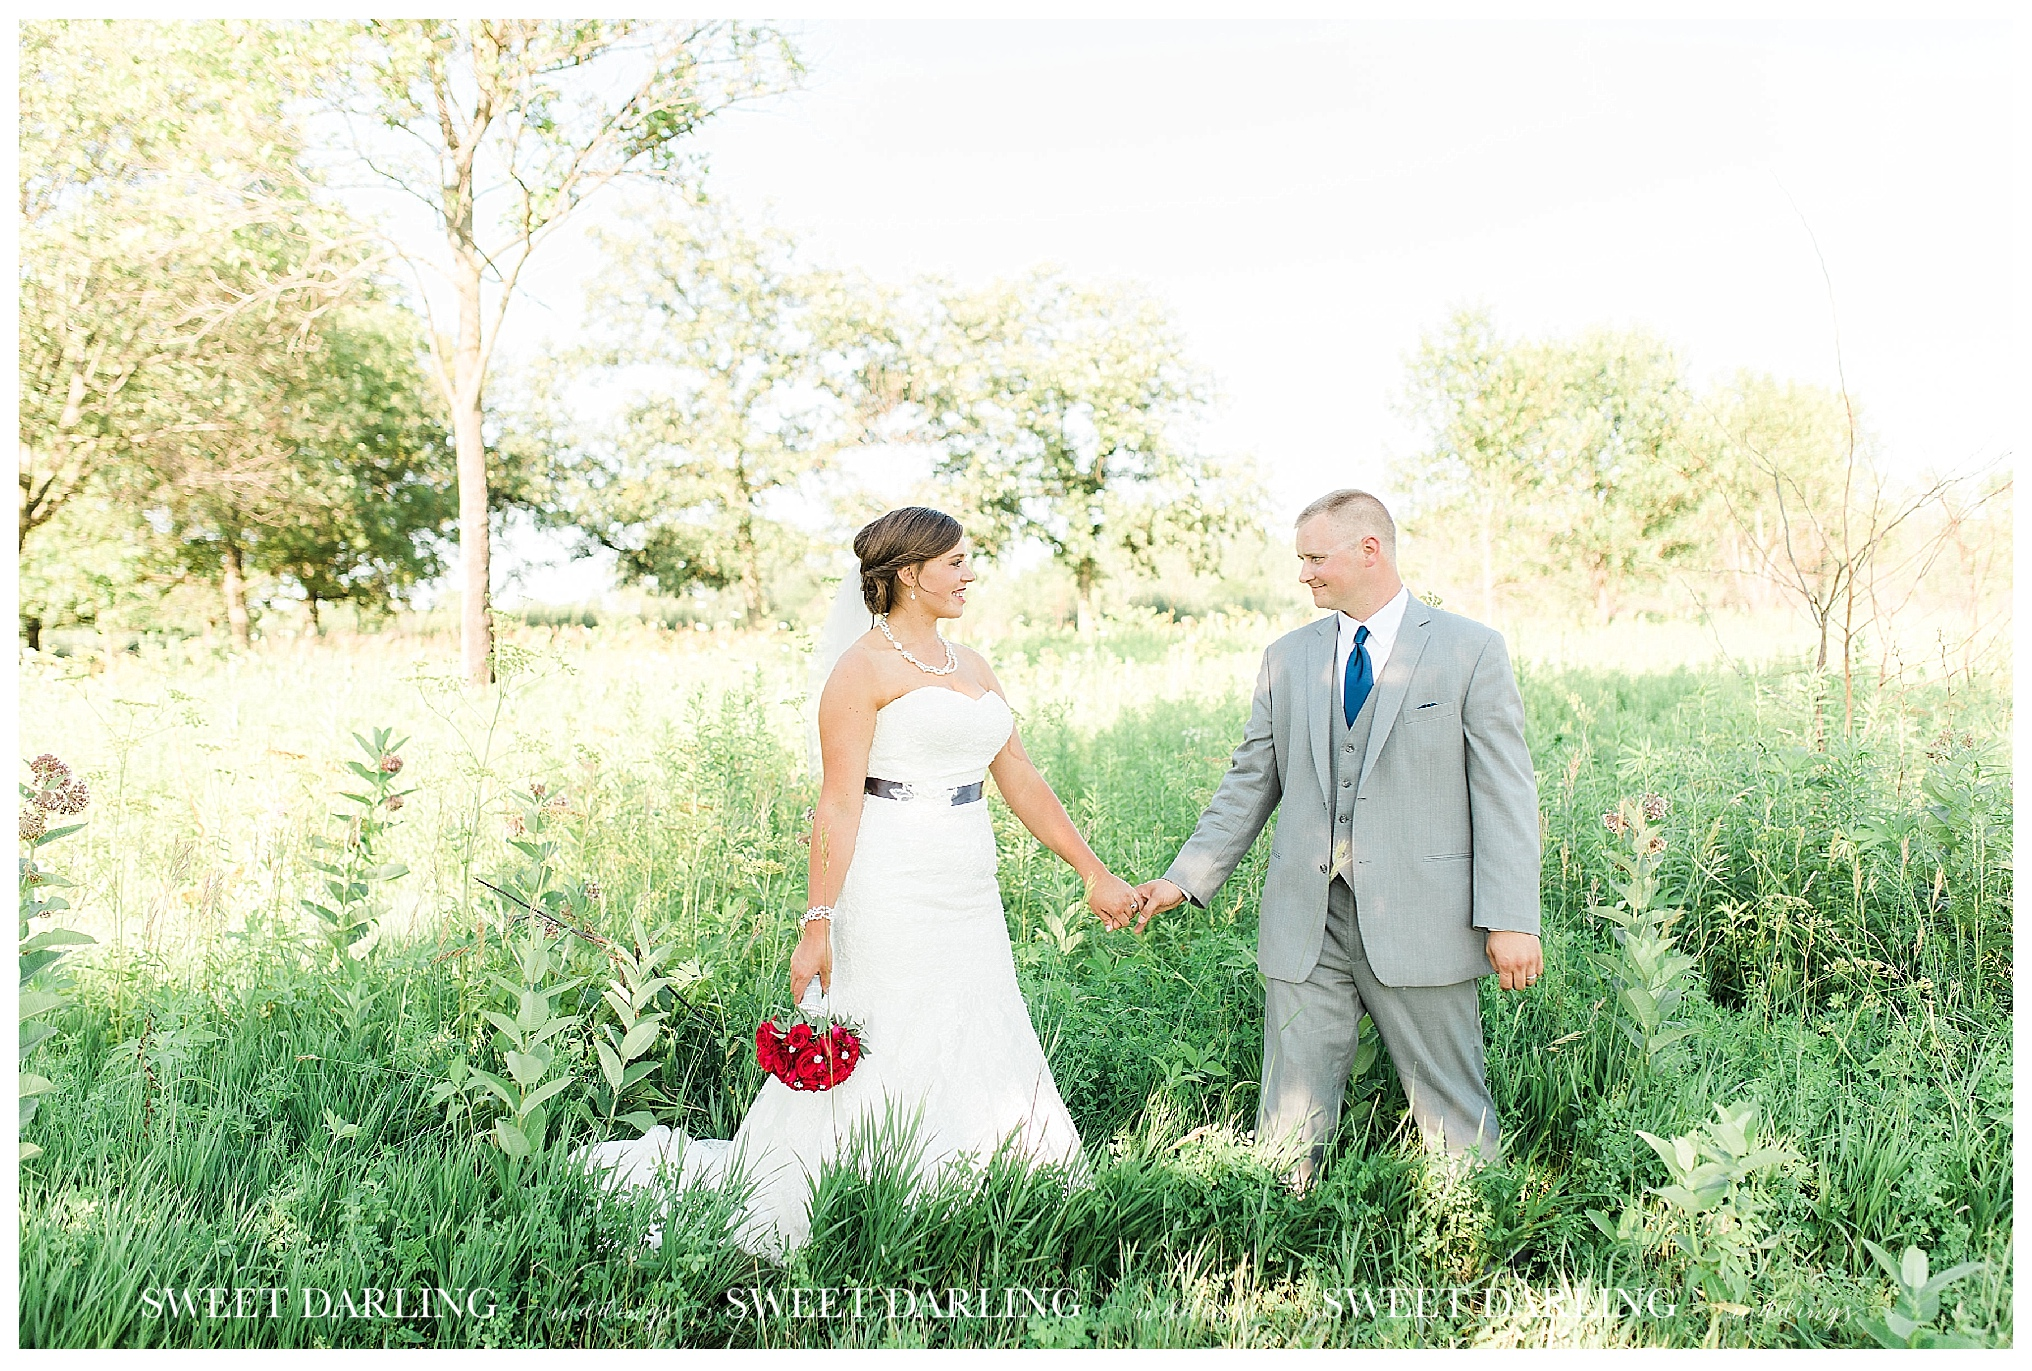 champaign-county-royal-paxton-illinois-sweet-darling-weddings-photography-red-navy-roses_1432.jpg